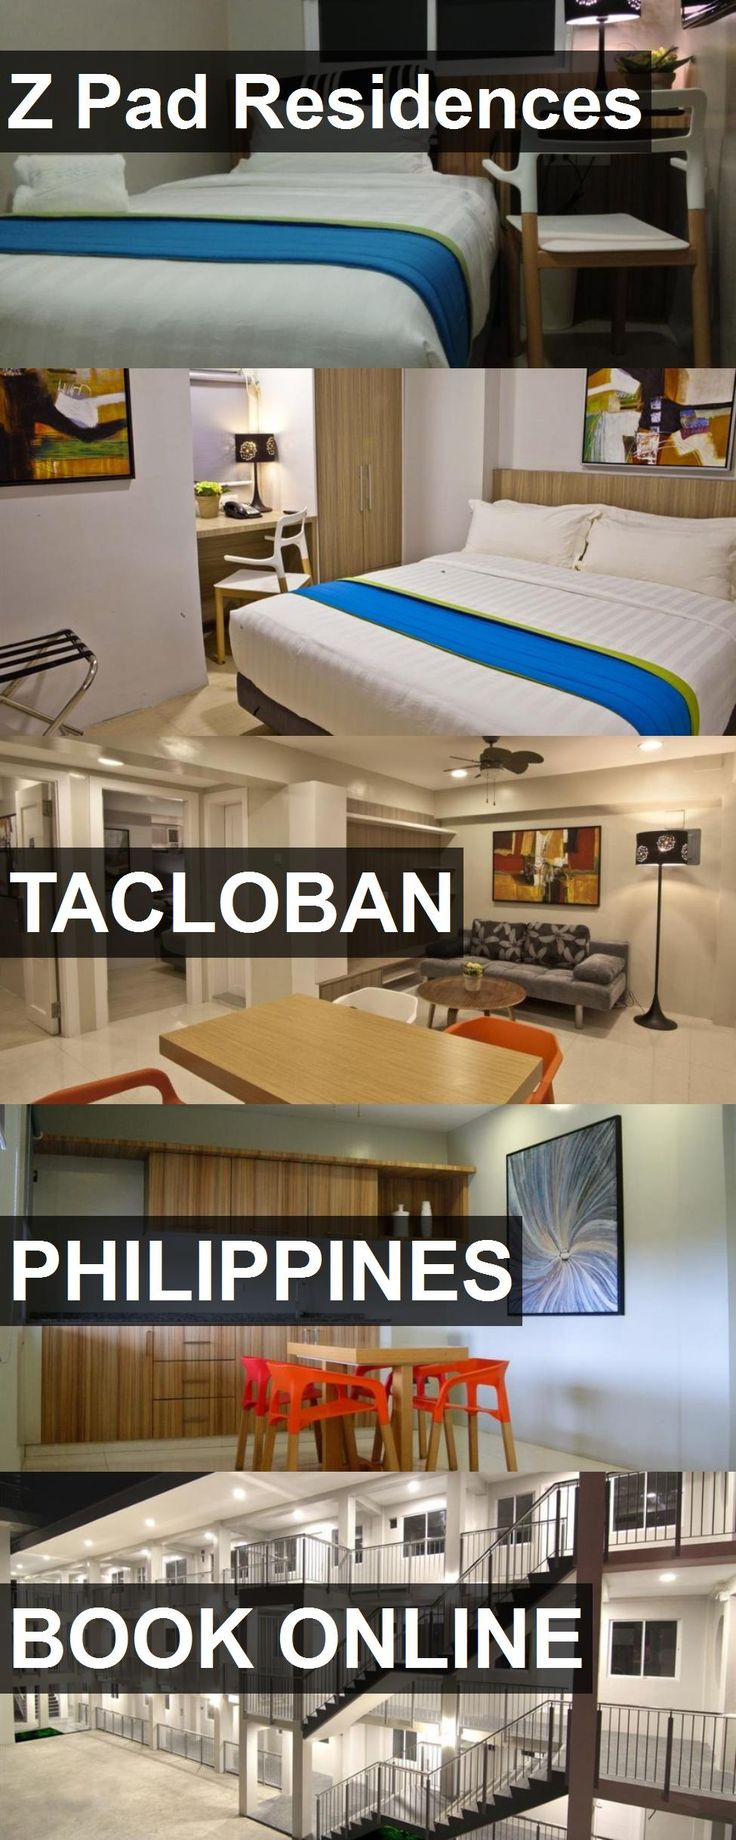 Hotel Z Pad Residences in Tacloban, Philippines. For more information, photos, reviews and best prices please follow the link. #Philippines #Tacloban #hotel #travel #vacation